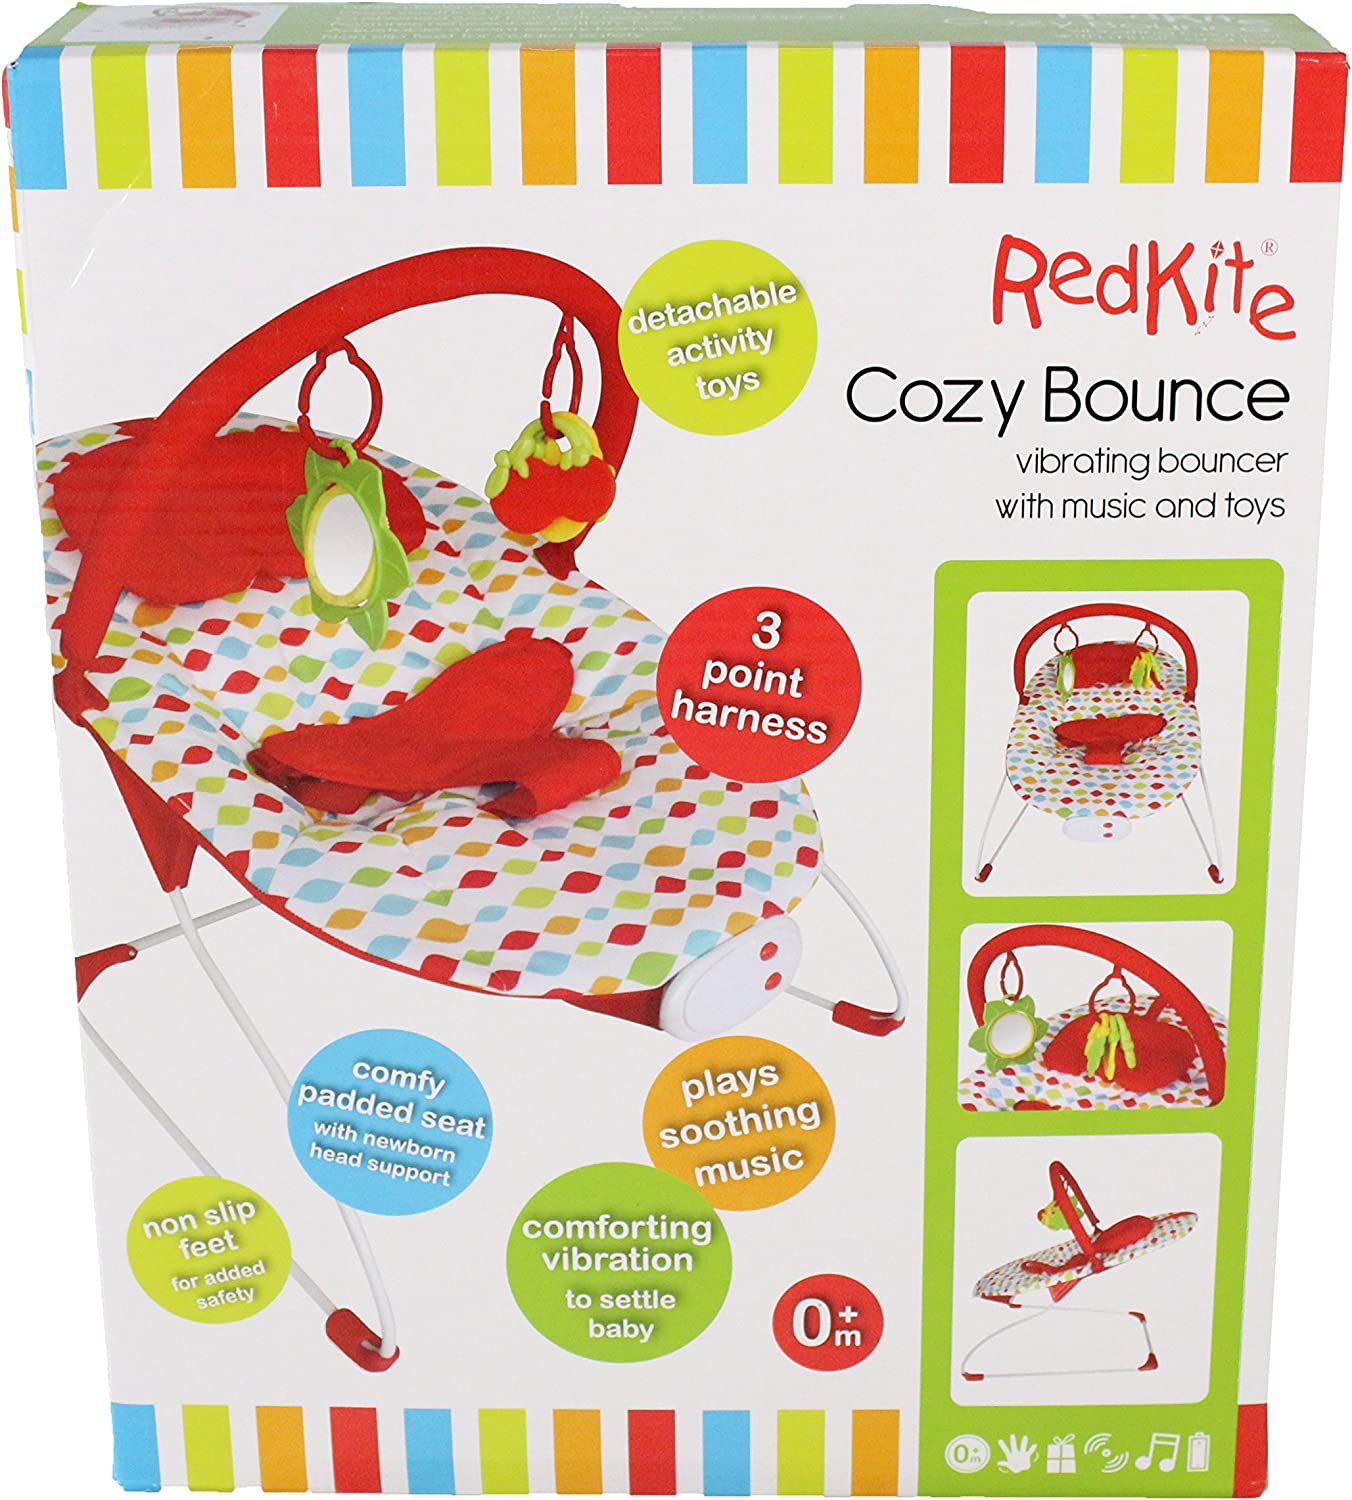 Carnival With Music Chair Vibrating Bouncer Cozy Bounce Red Kite